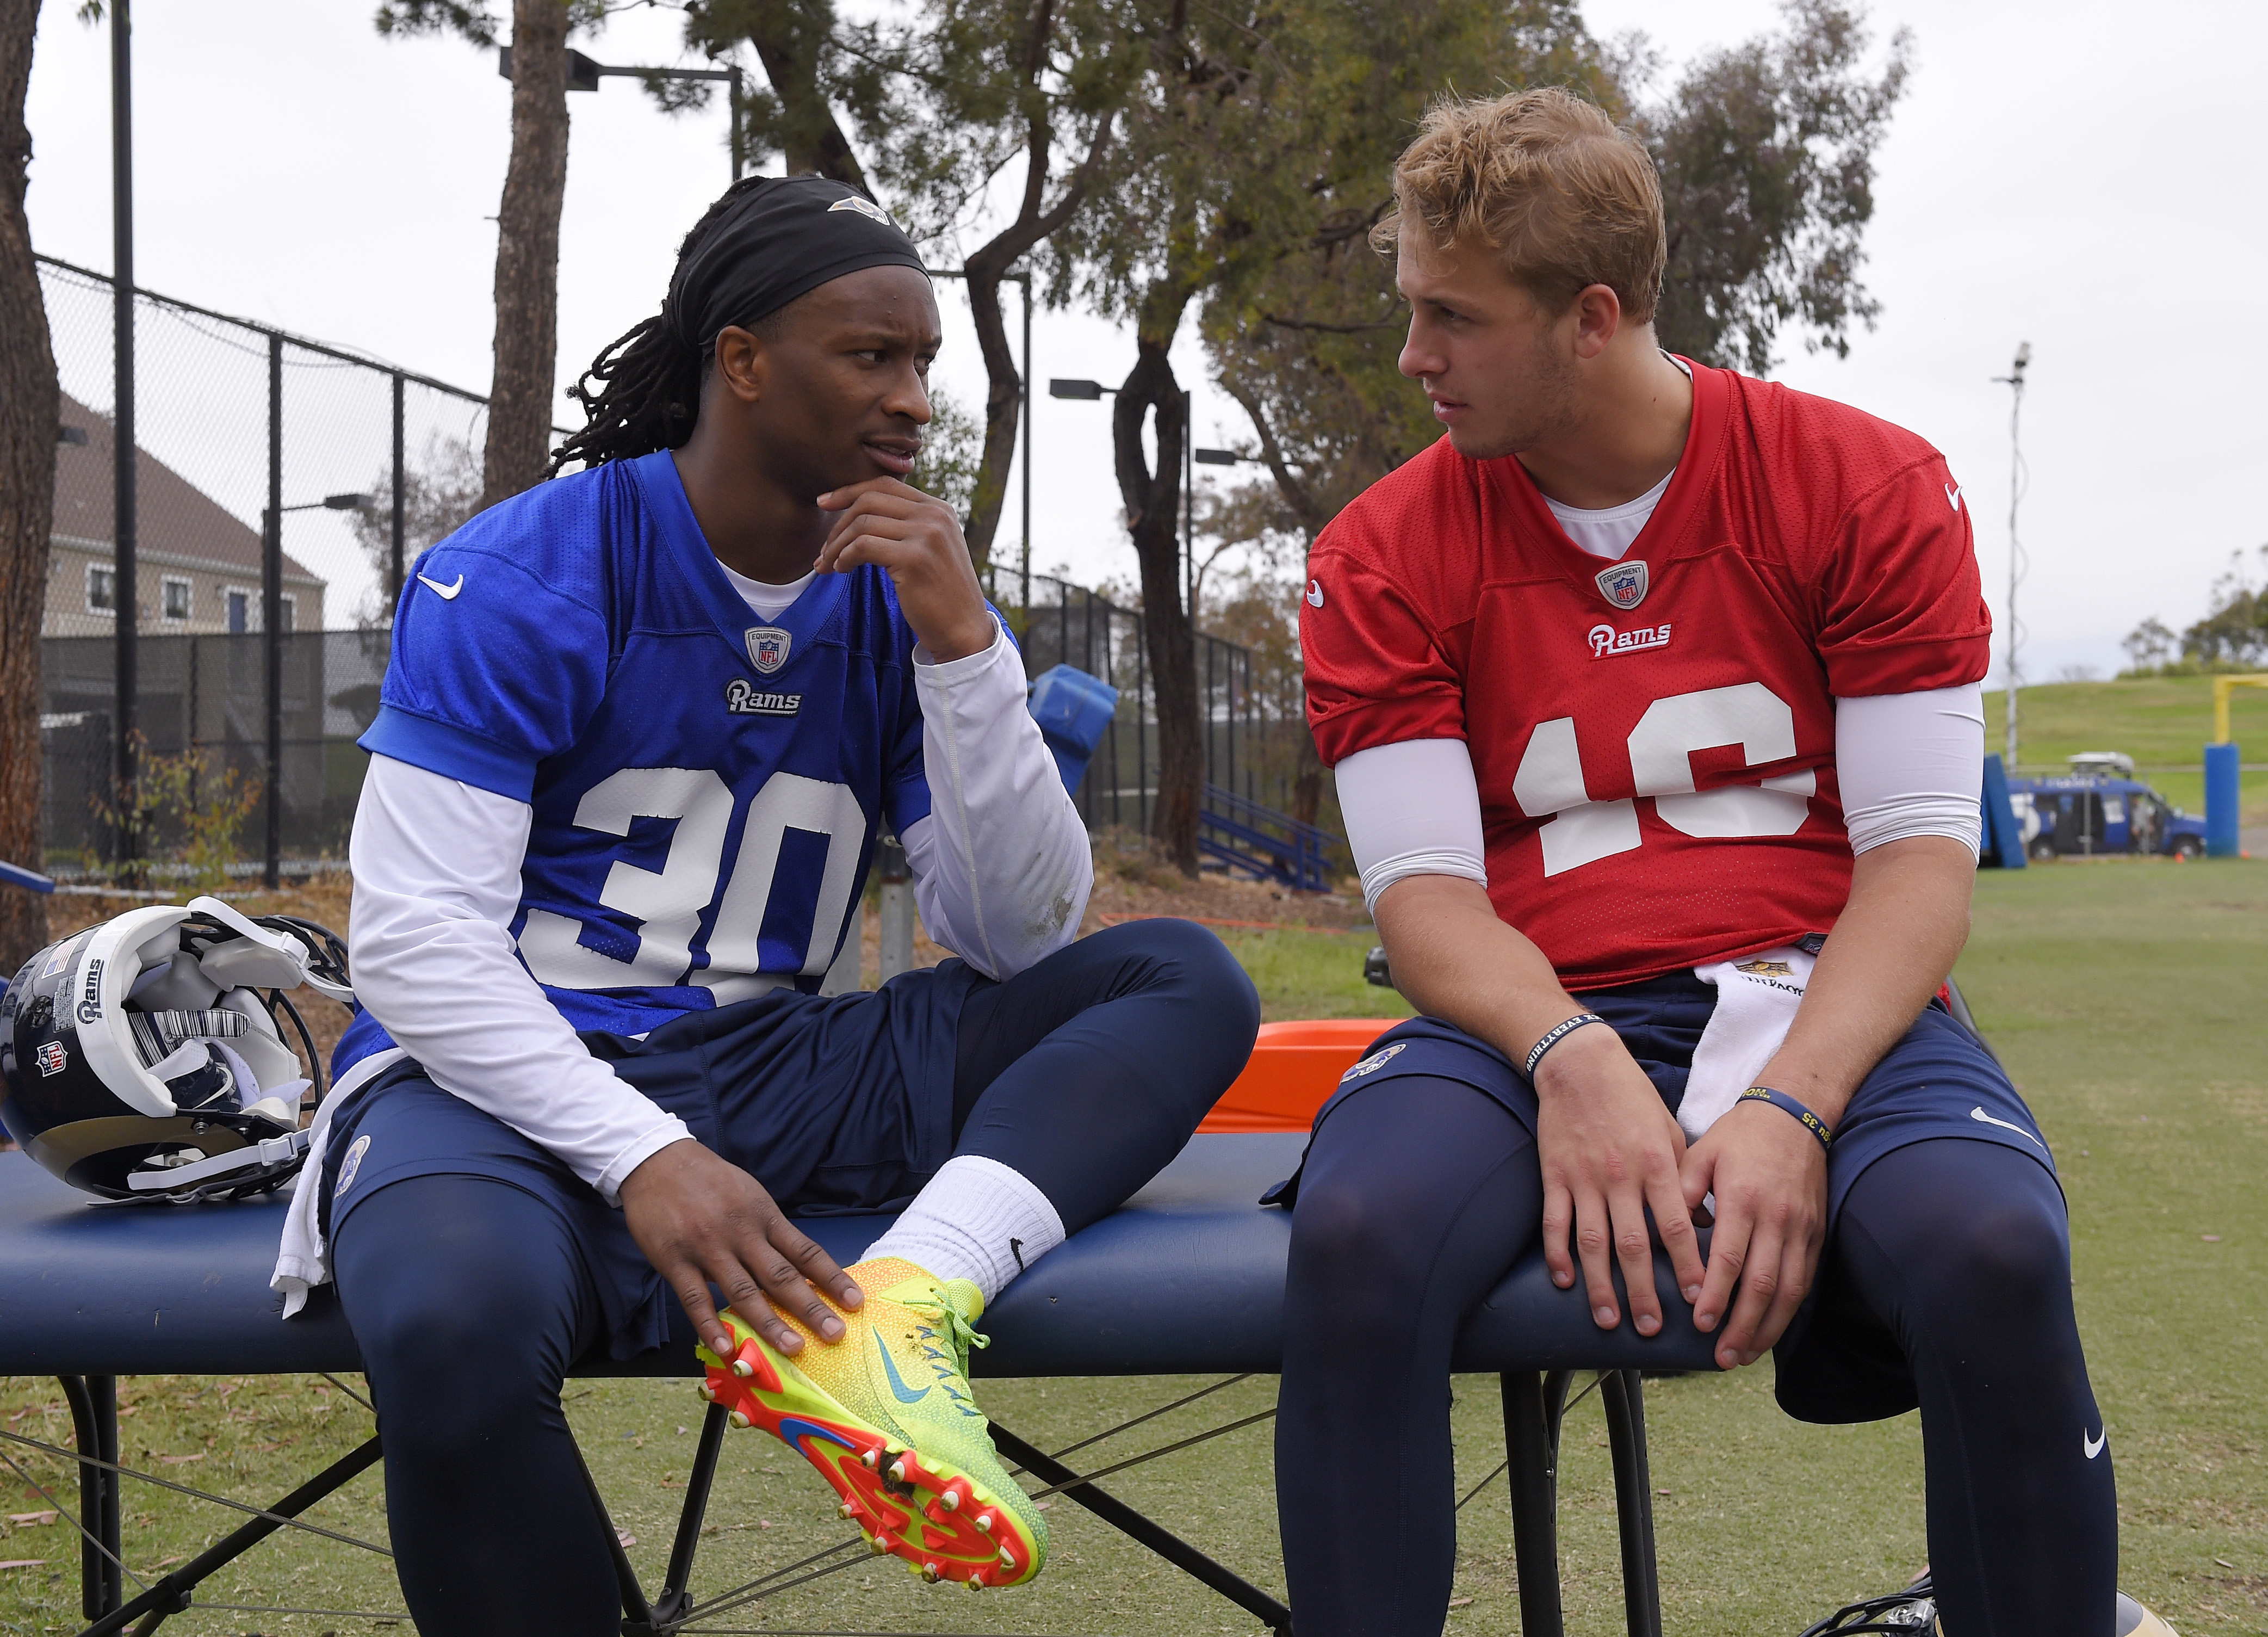 FILE - In this June 1, 2016, file photo, Los Angeles Rams running back Todd Gurley , left, talks with quarterback Jared Goff during NFL football practice in Oxnard, Calif. The Rams hopes are built around a revitalization of the NFLs worst offense last sea